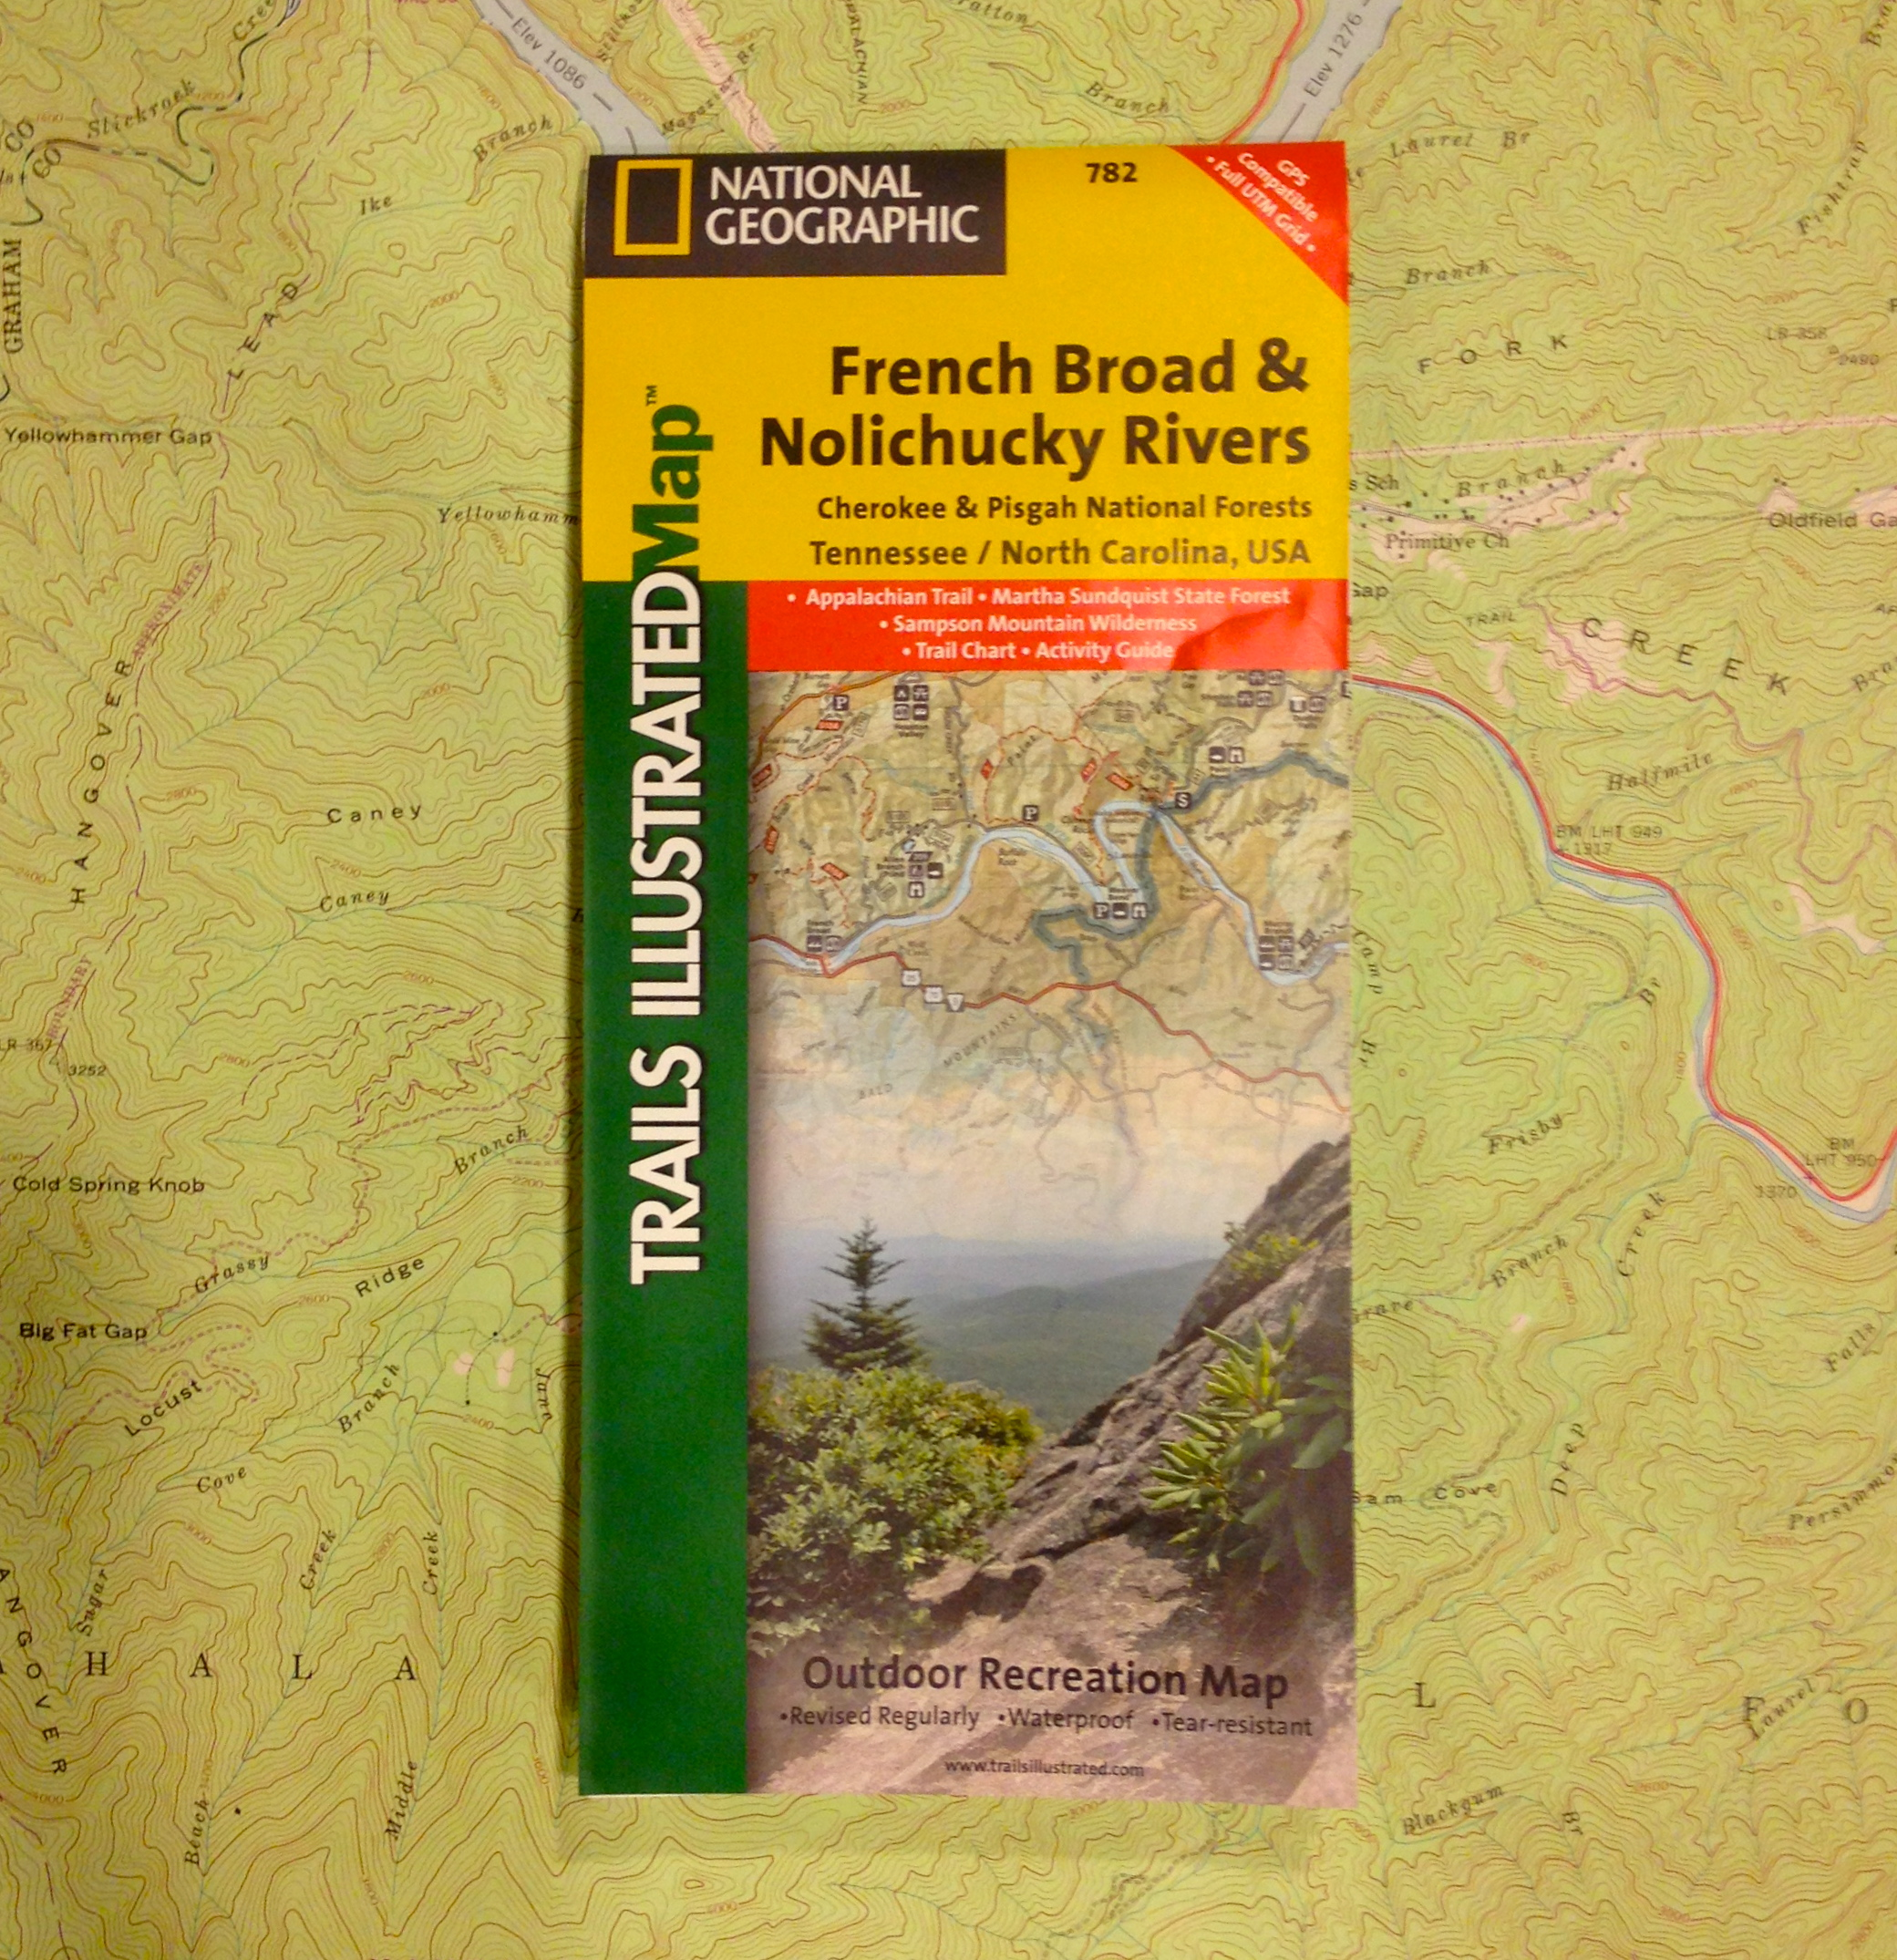 National Geographic Trails illustrated Map - French Broad Nolichuchy Rivers (782)